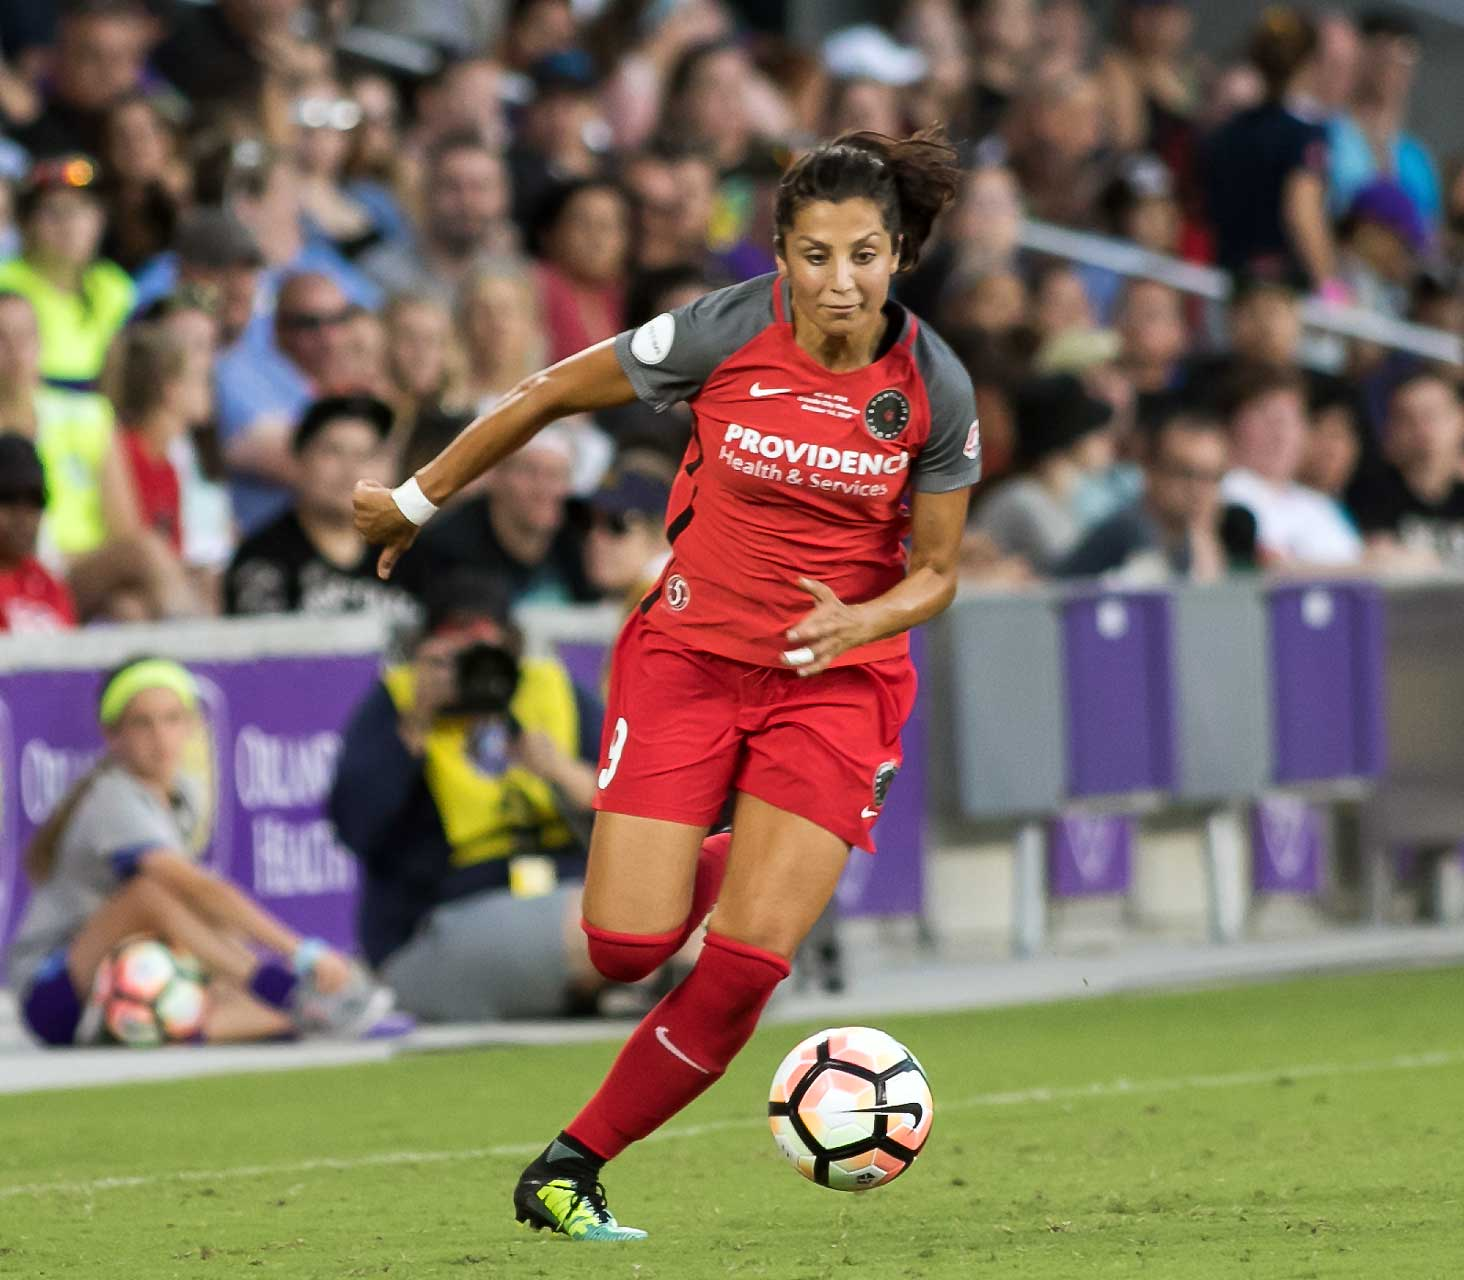 Nadia Nadim playing for the Portland Thorns FC in 2017 (Wikimedia Commons)